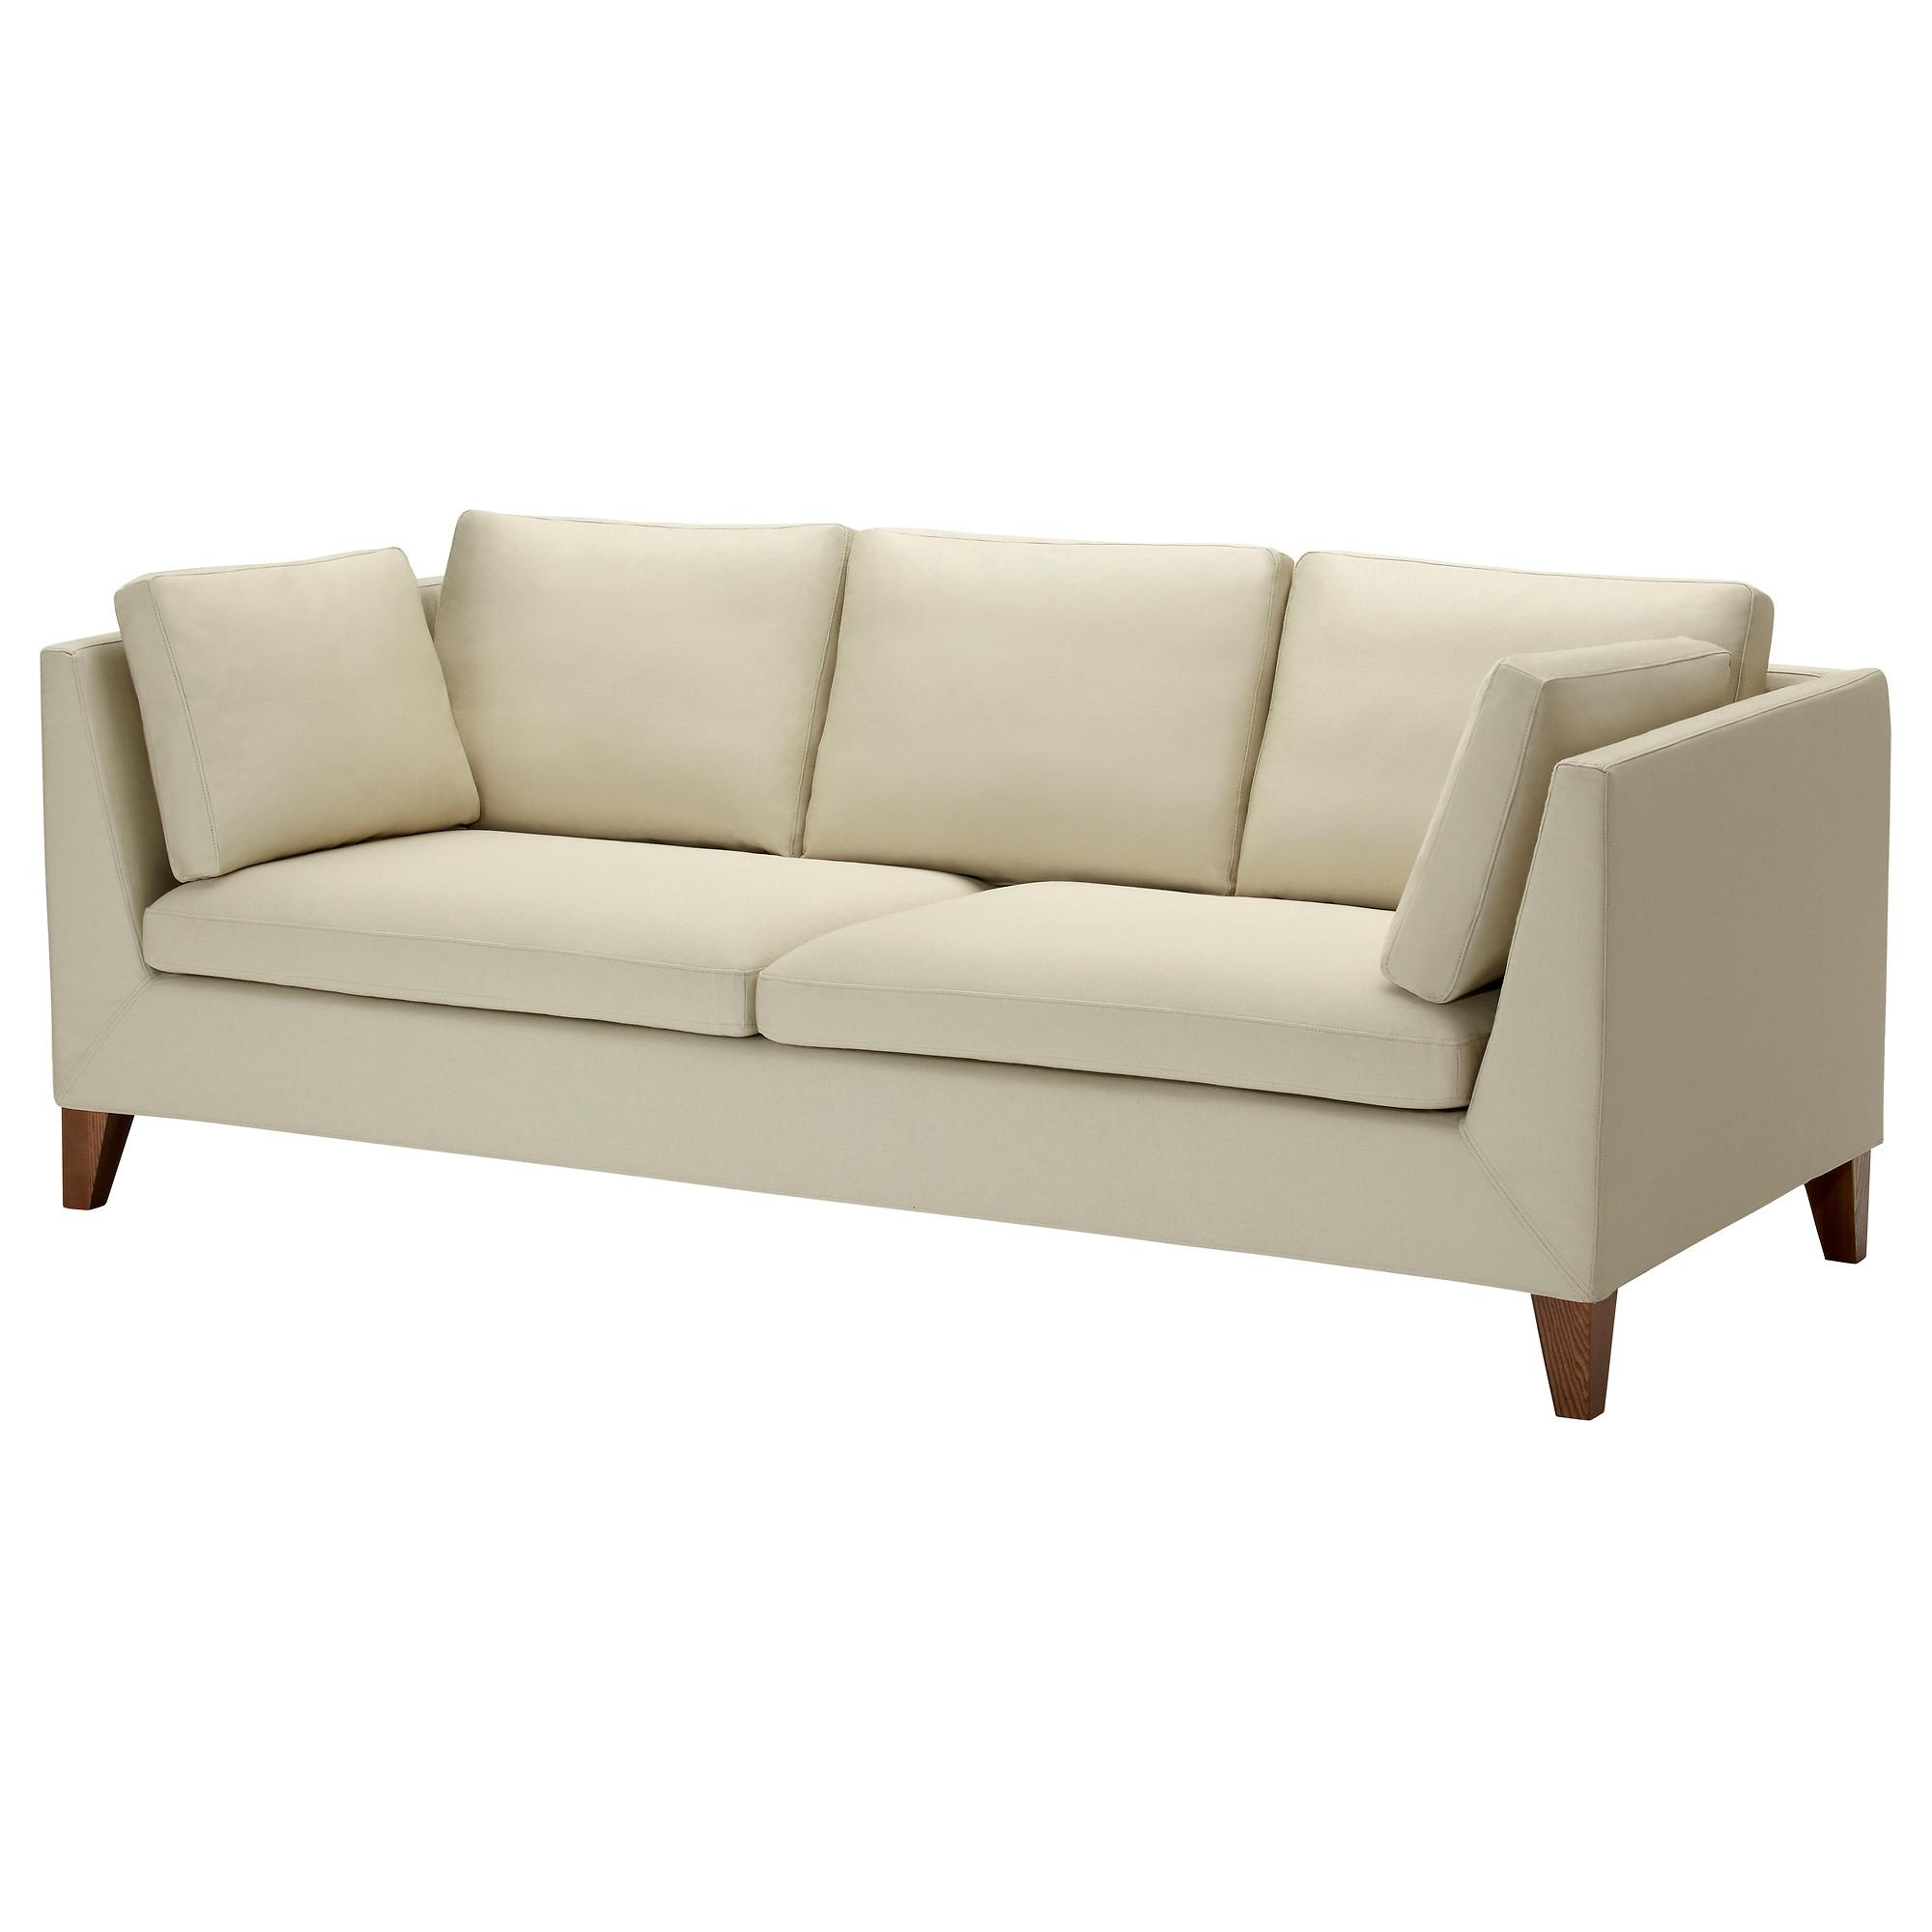 Lounge Sofa Depth Narrow Depth Sofas Gracie Sofa Shallow Depth With Back In